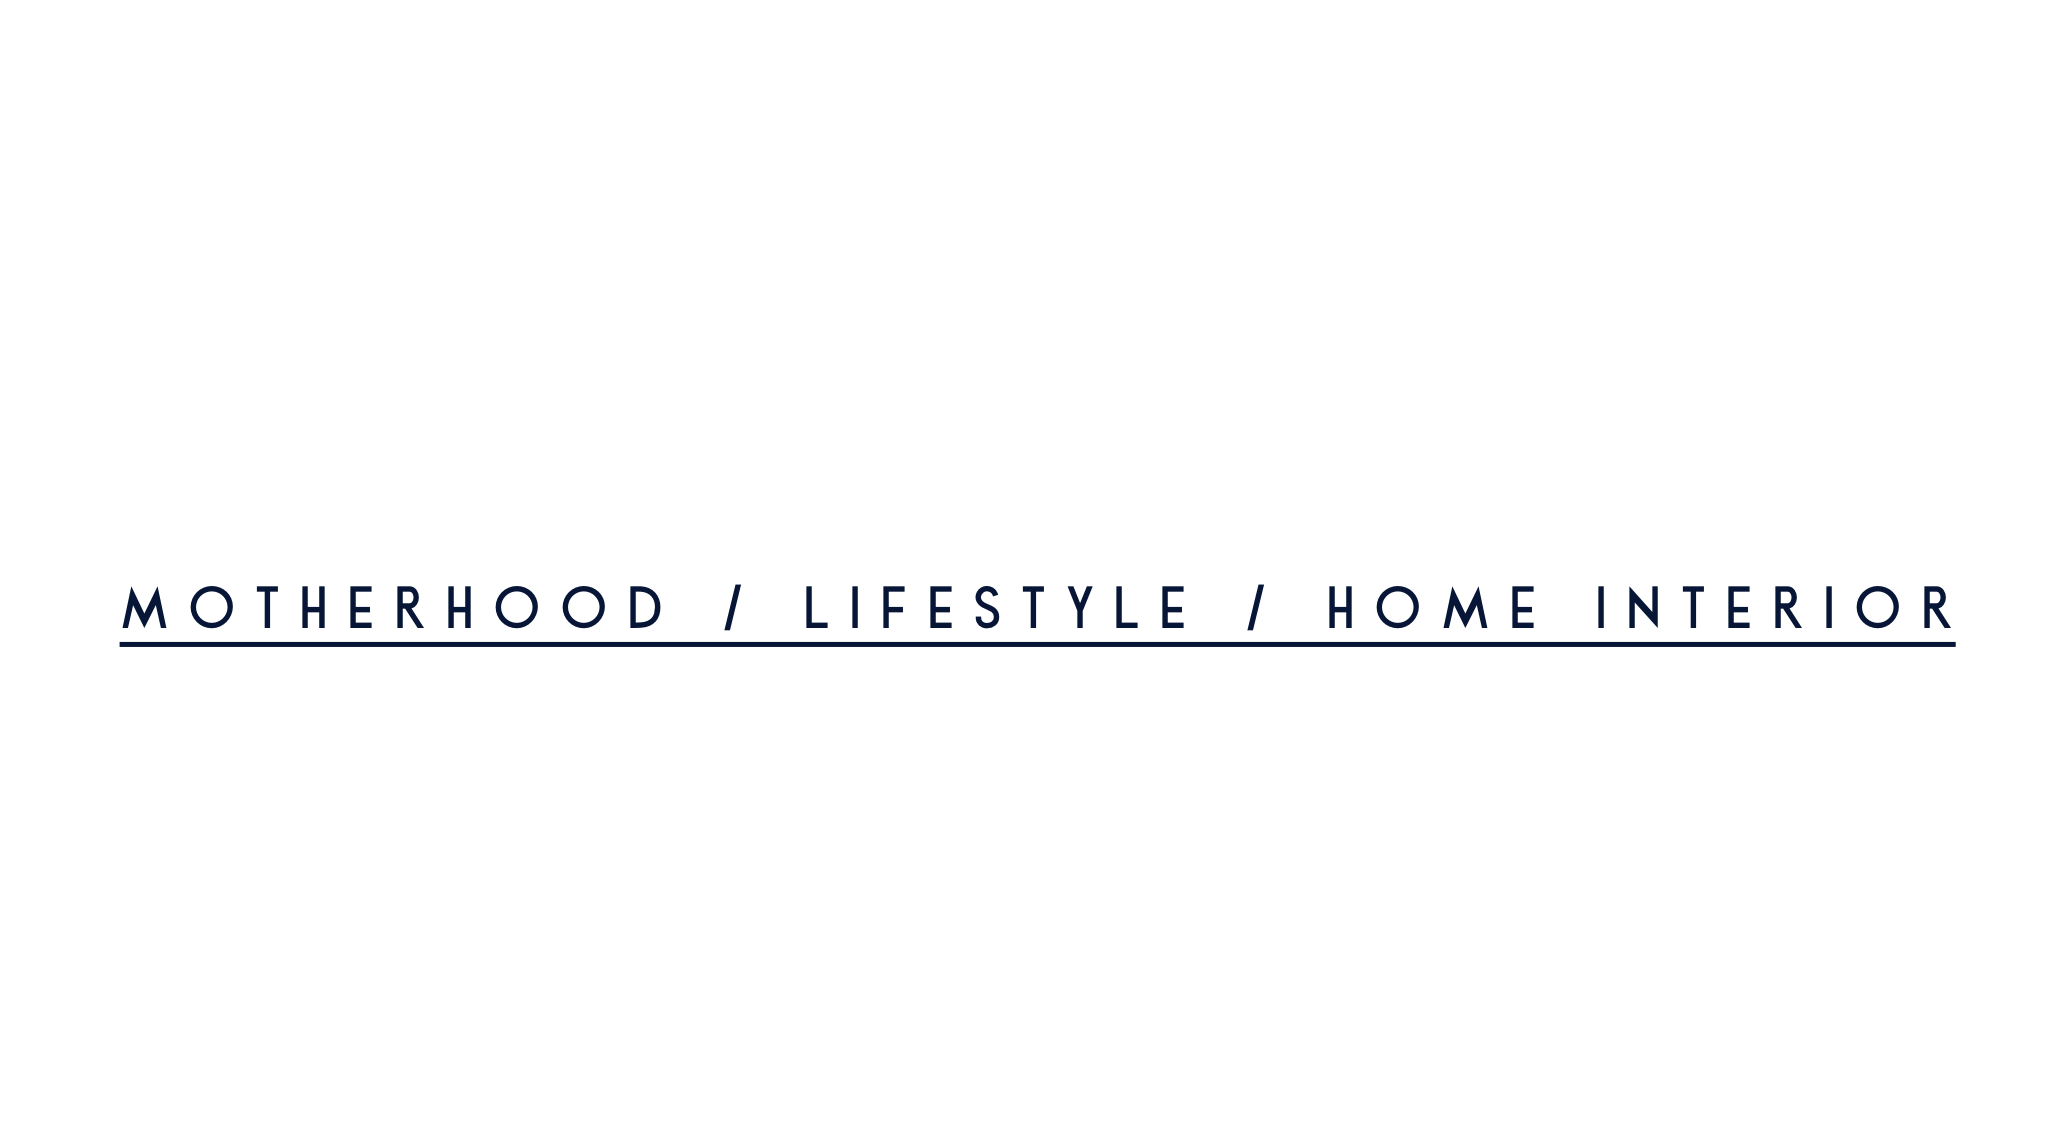 moherhood lifestyle jgome interir.PNG